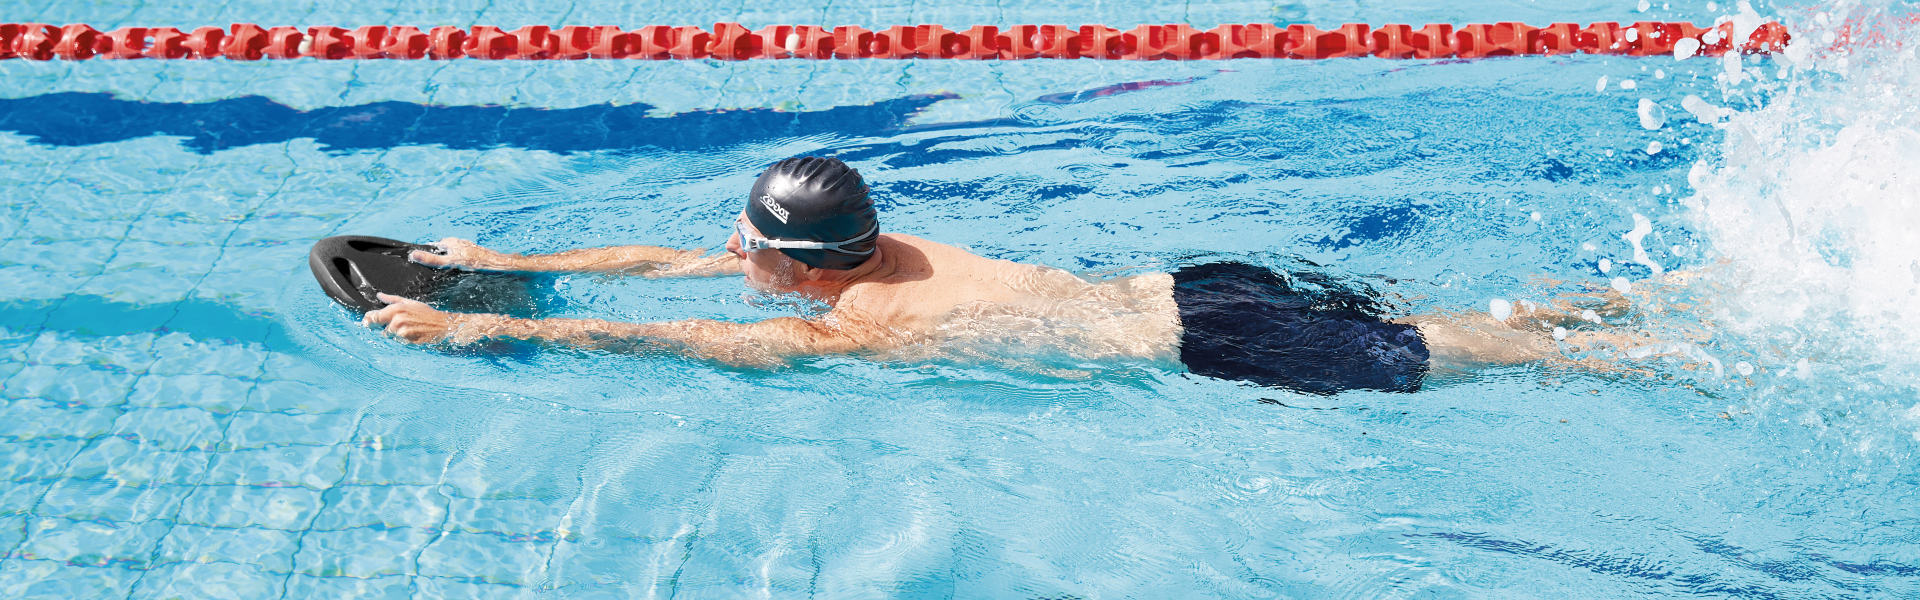 5 common swimming hang ups and how to overcome them